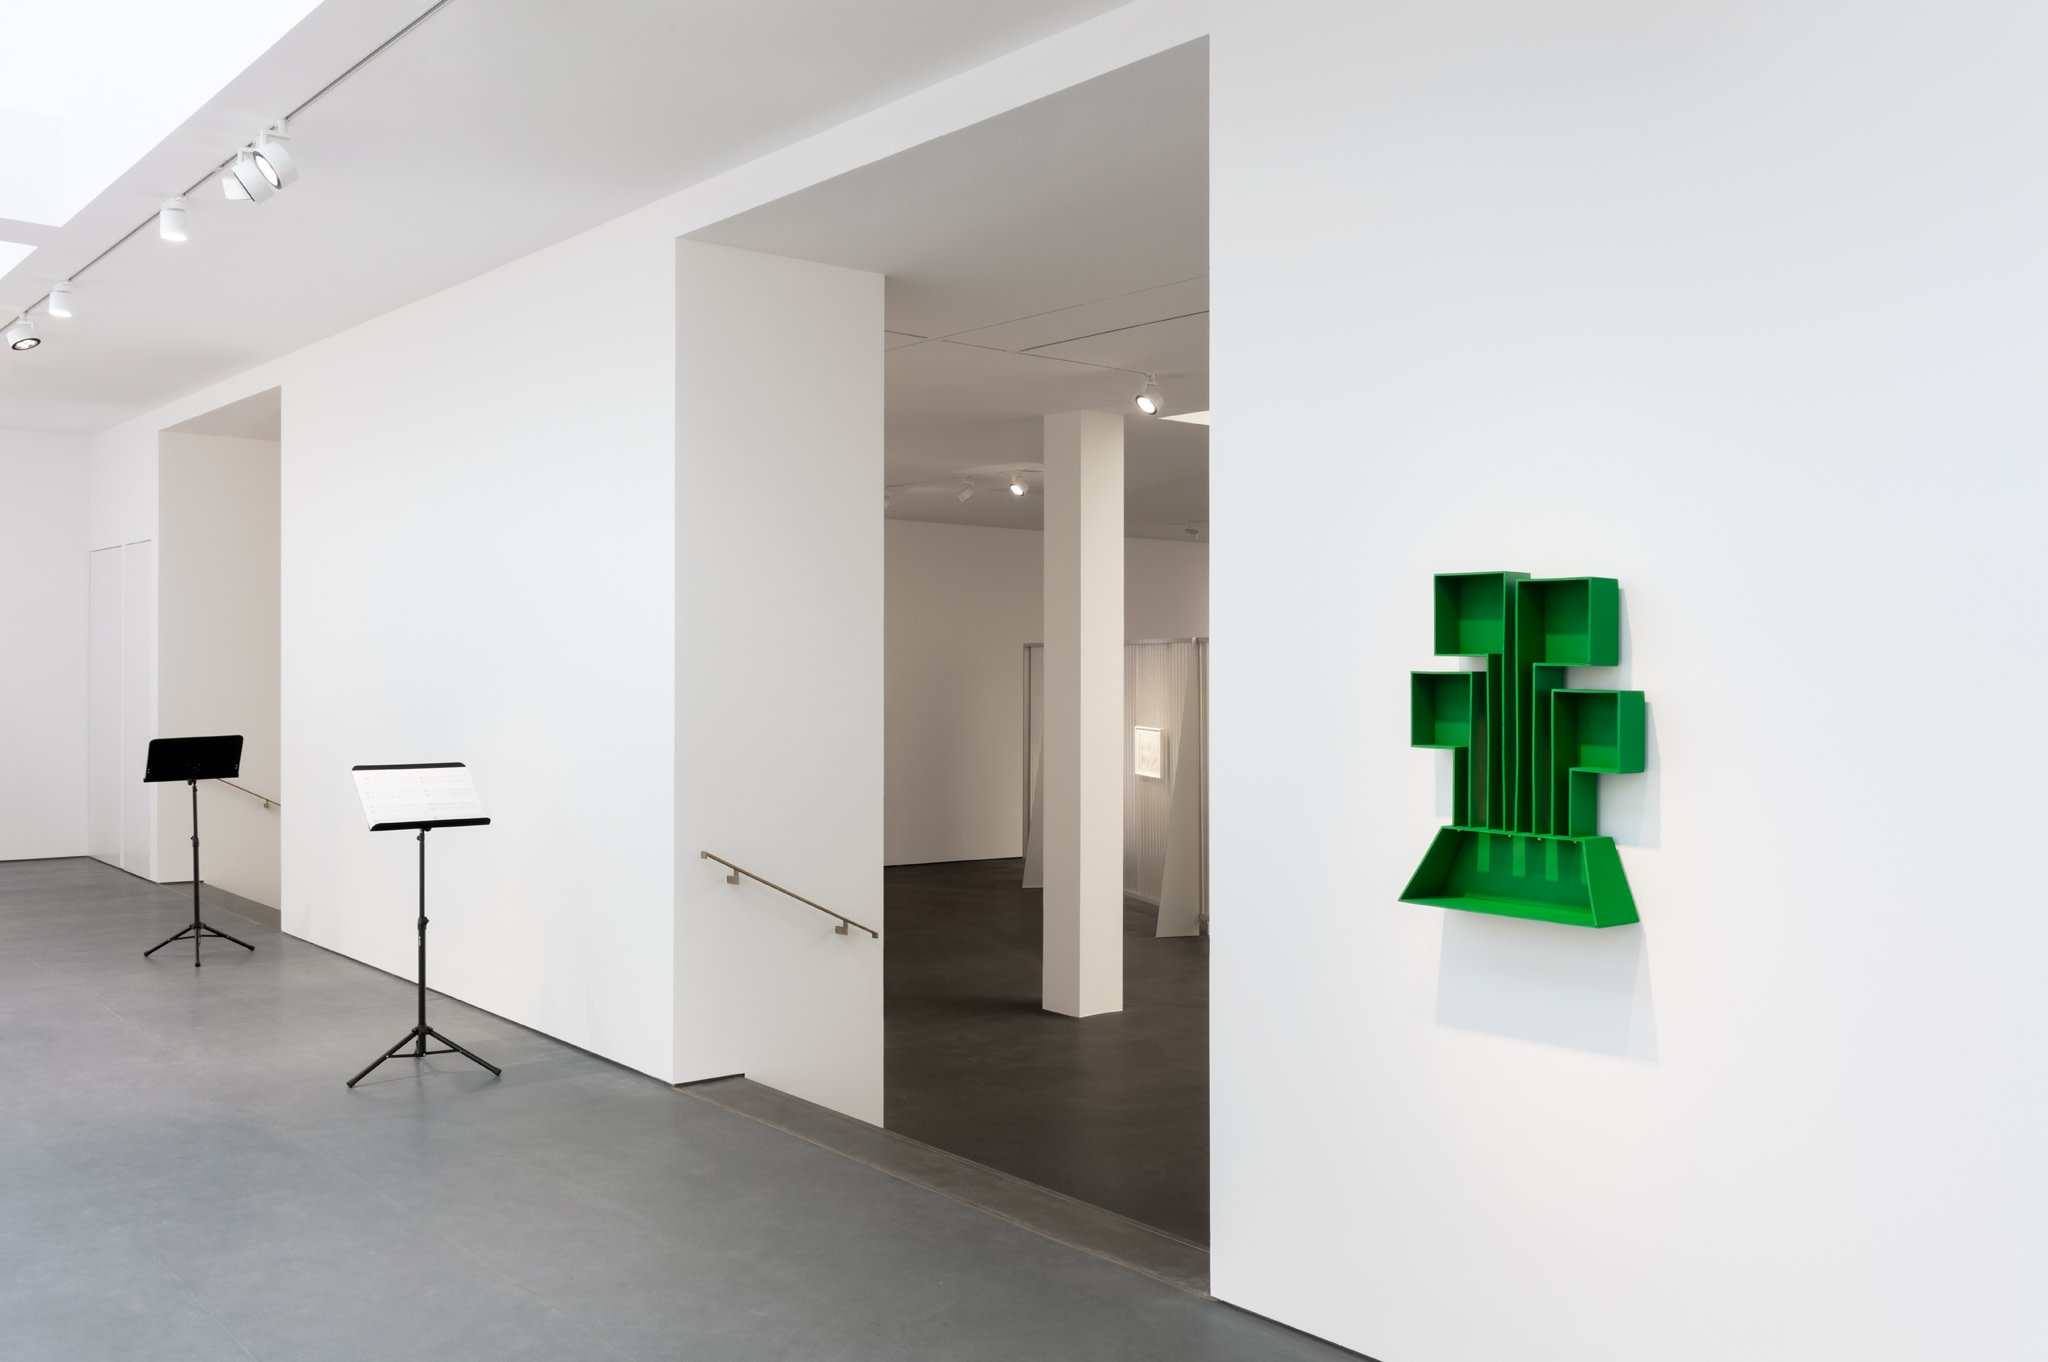 Exhibition view: PS81E, Esther Schipper, Berlin, 2020. Photo © Andrea Rossetti